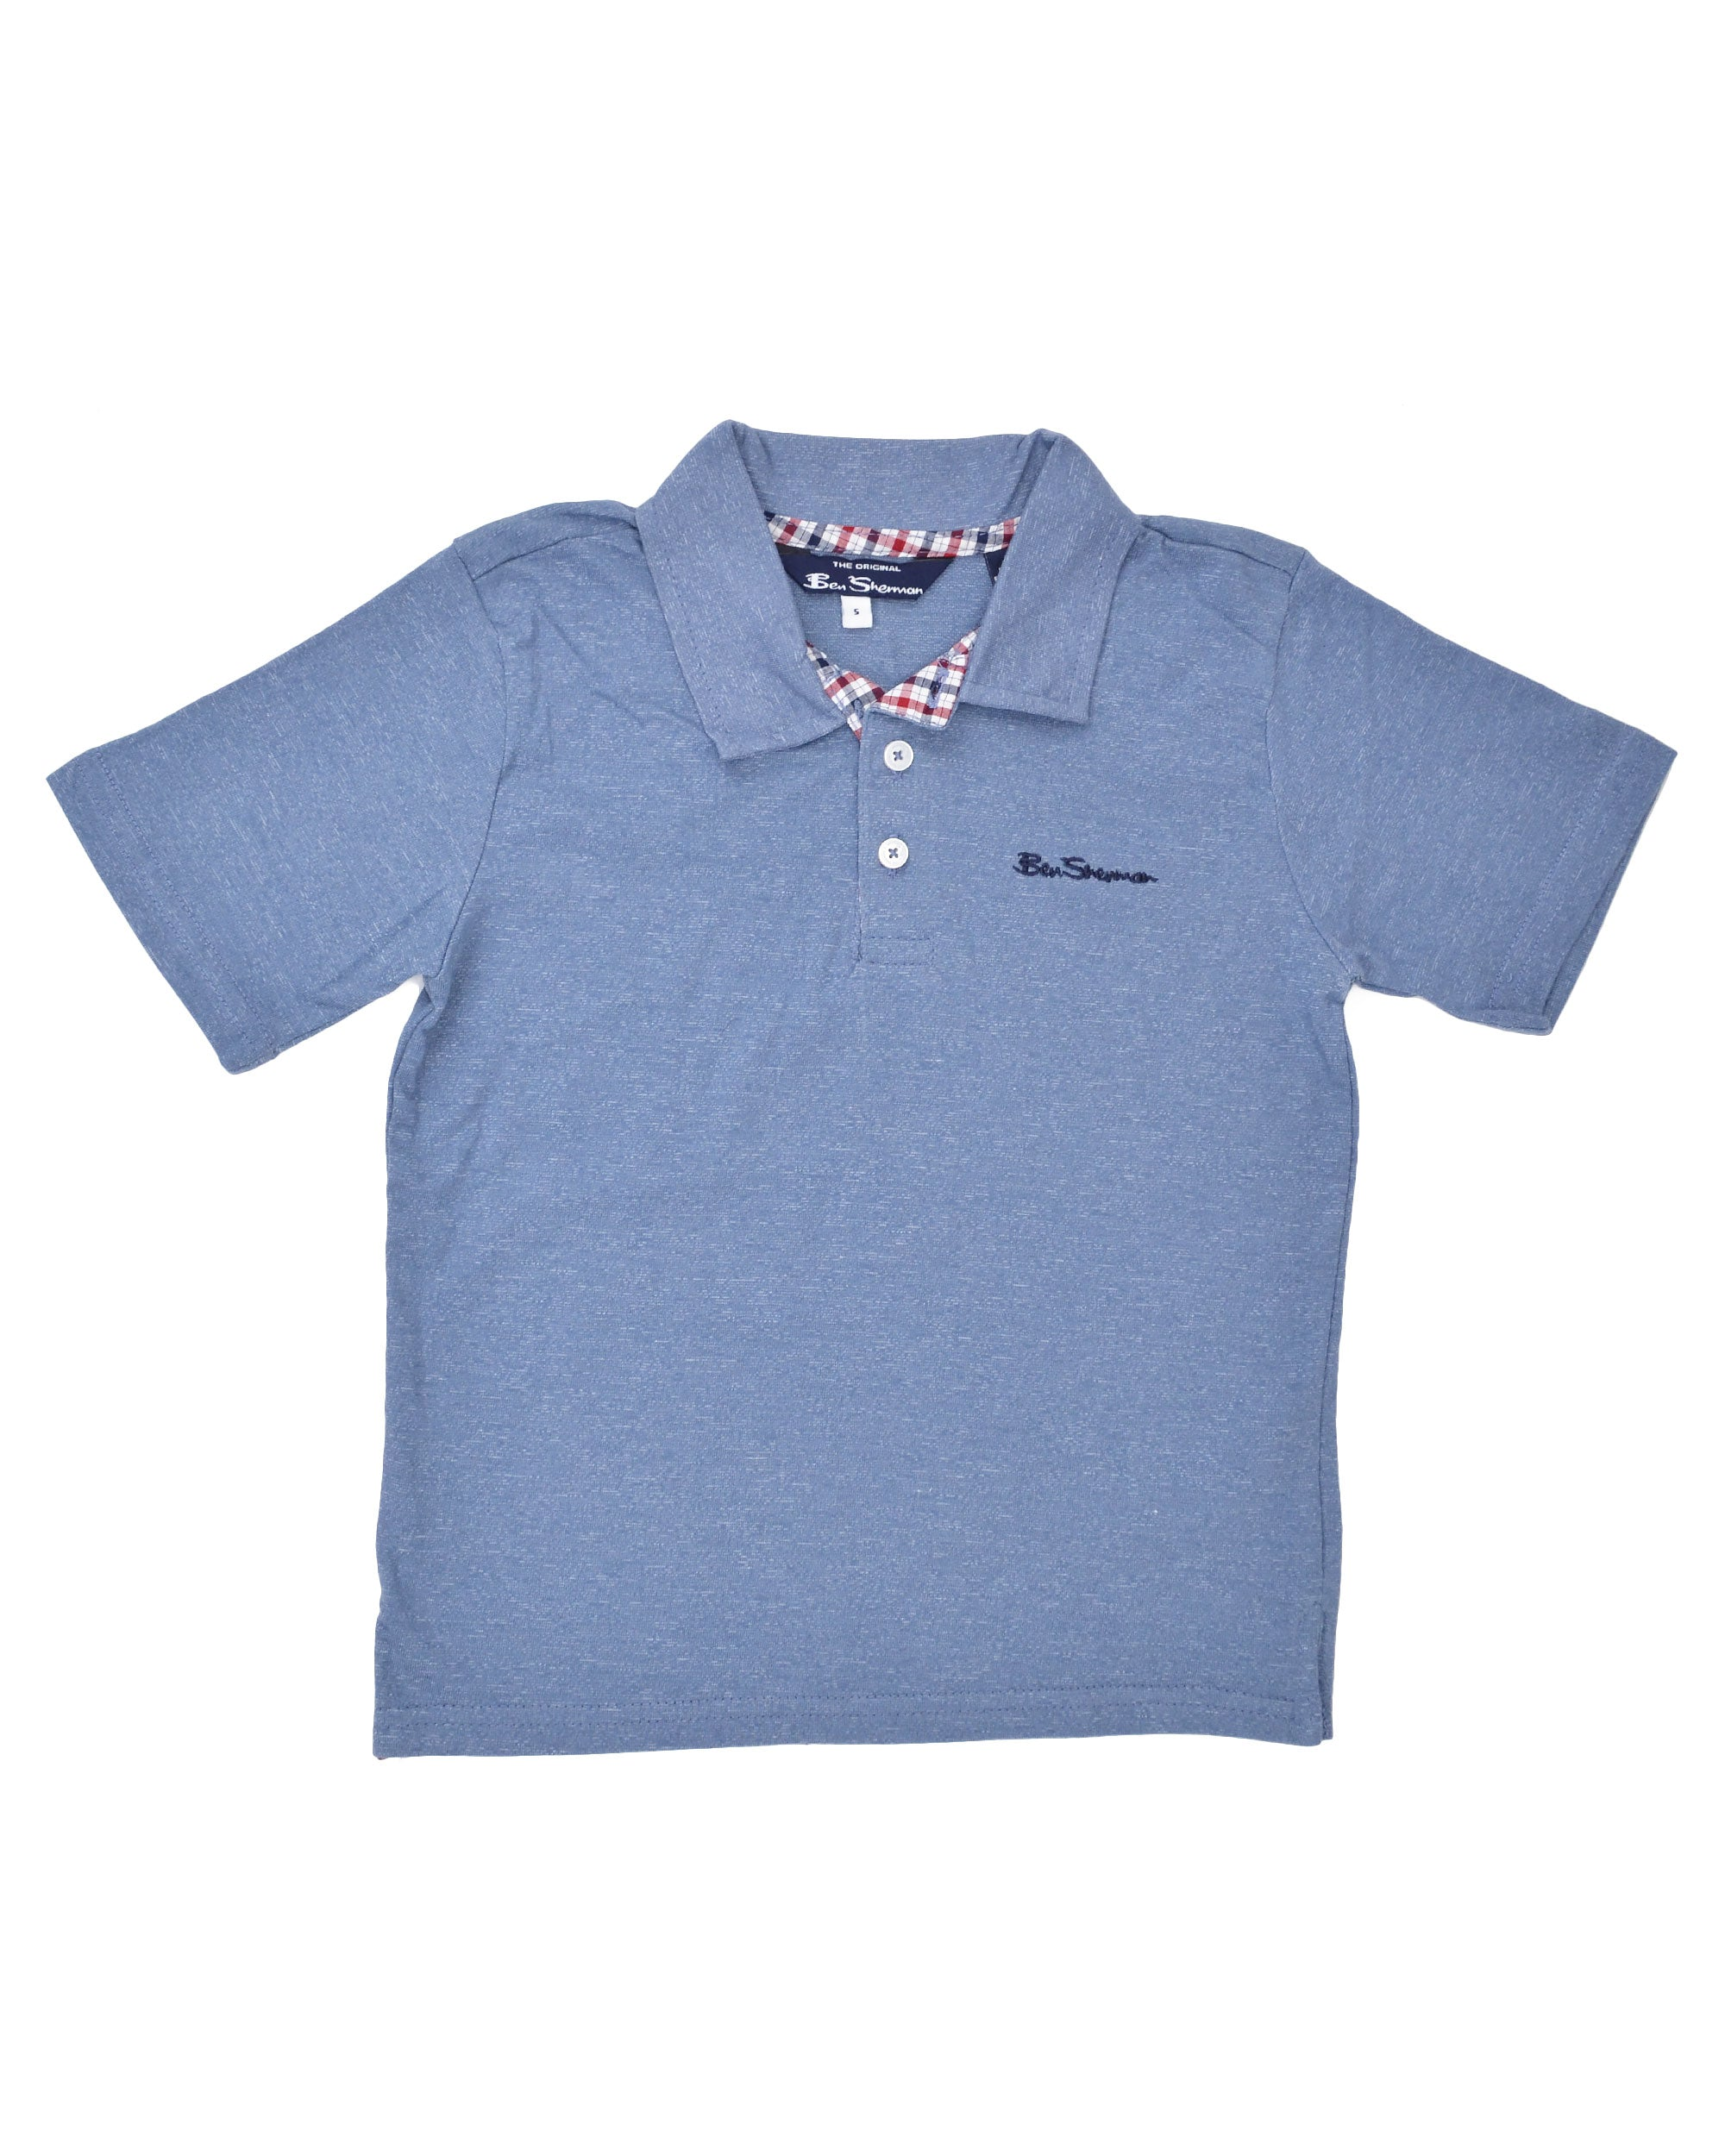 c7a4e68f1 Boys' Short-Sleeve Polo Shirt - Blue (Sizes 4-7). Hover or Click to Enlarge